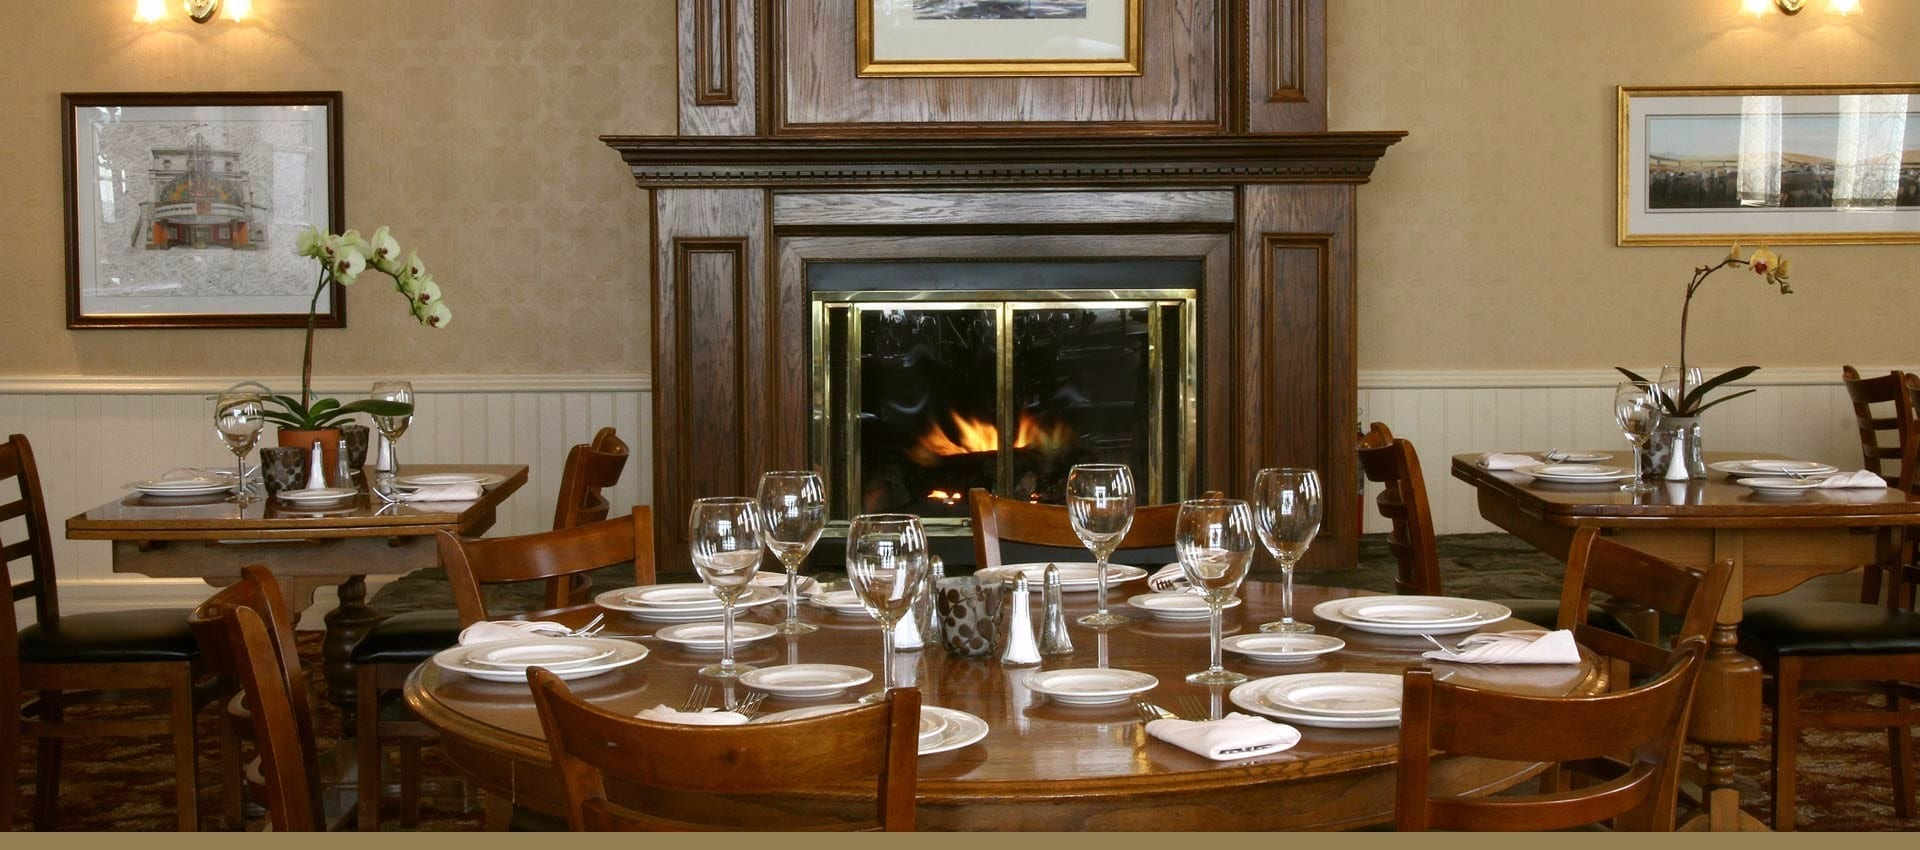 Victorian Village Inn Dining room with fireplace